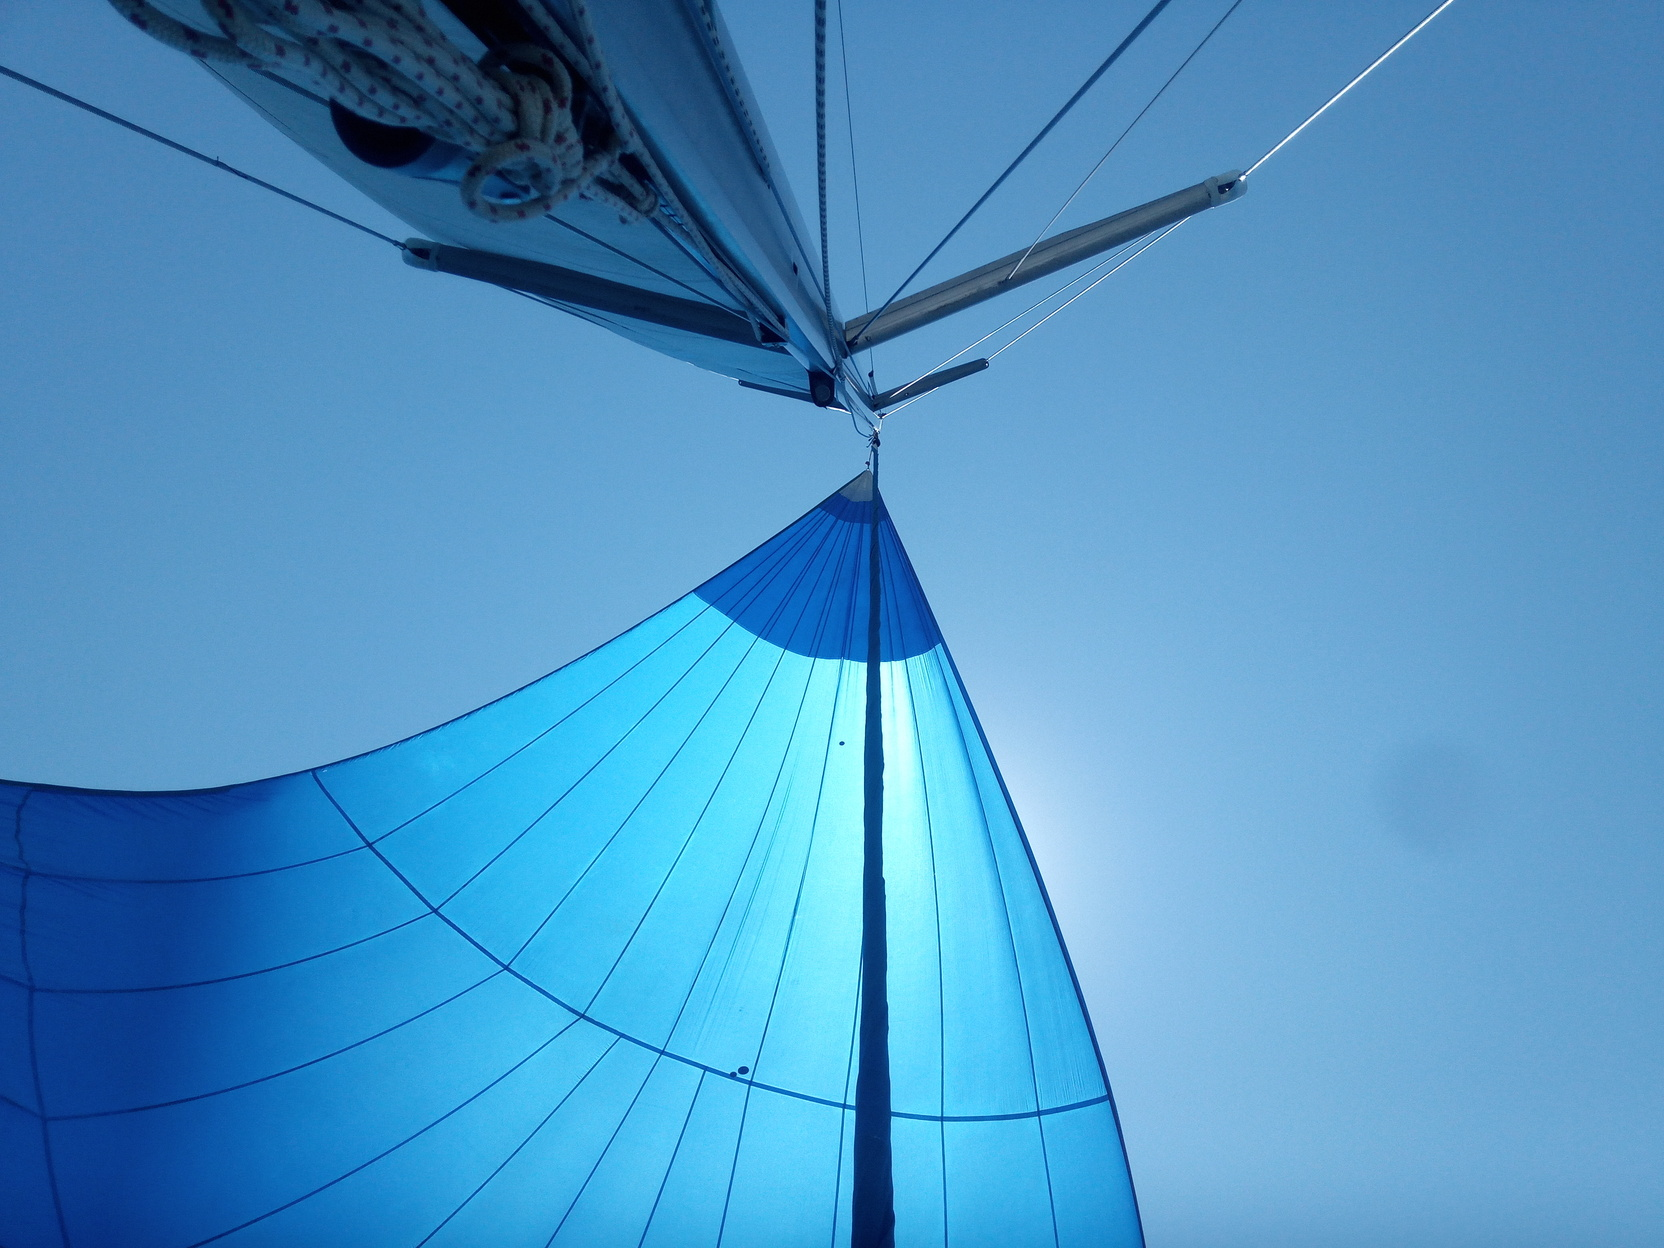 flying the asymetric.  Shades of blue